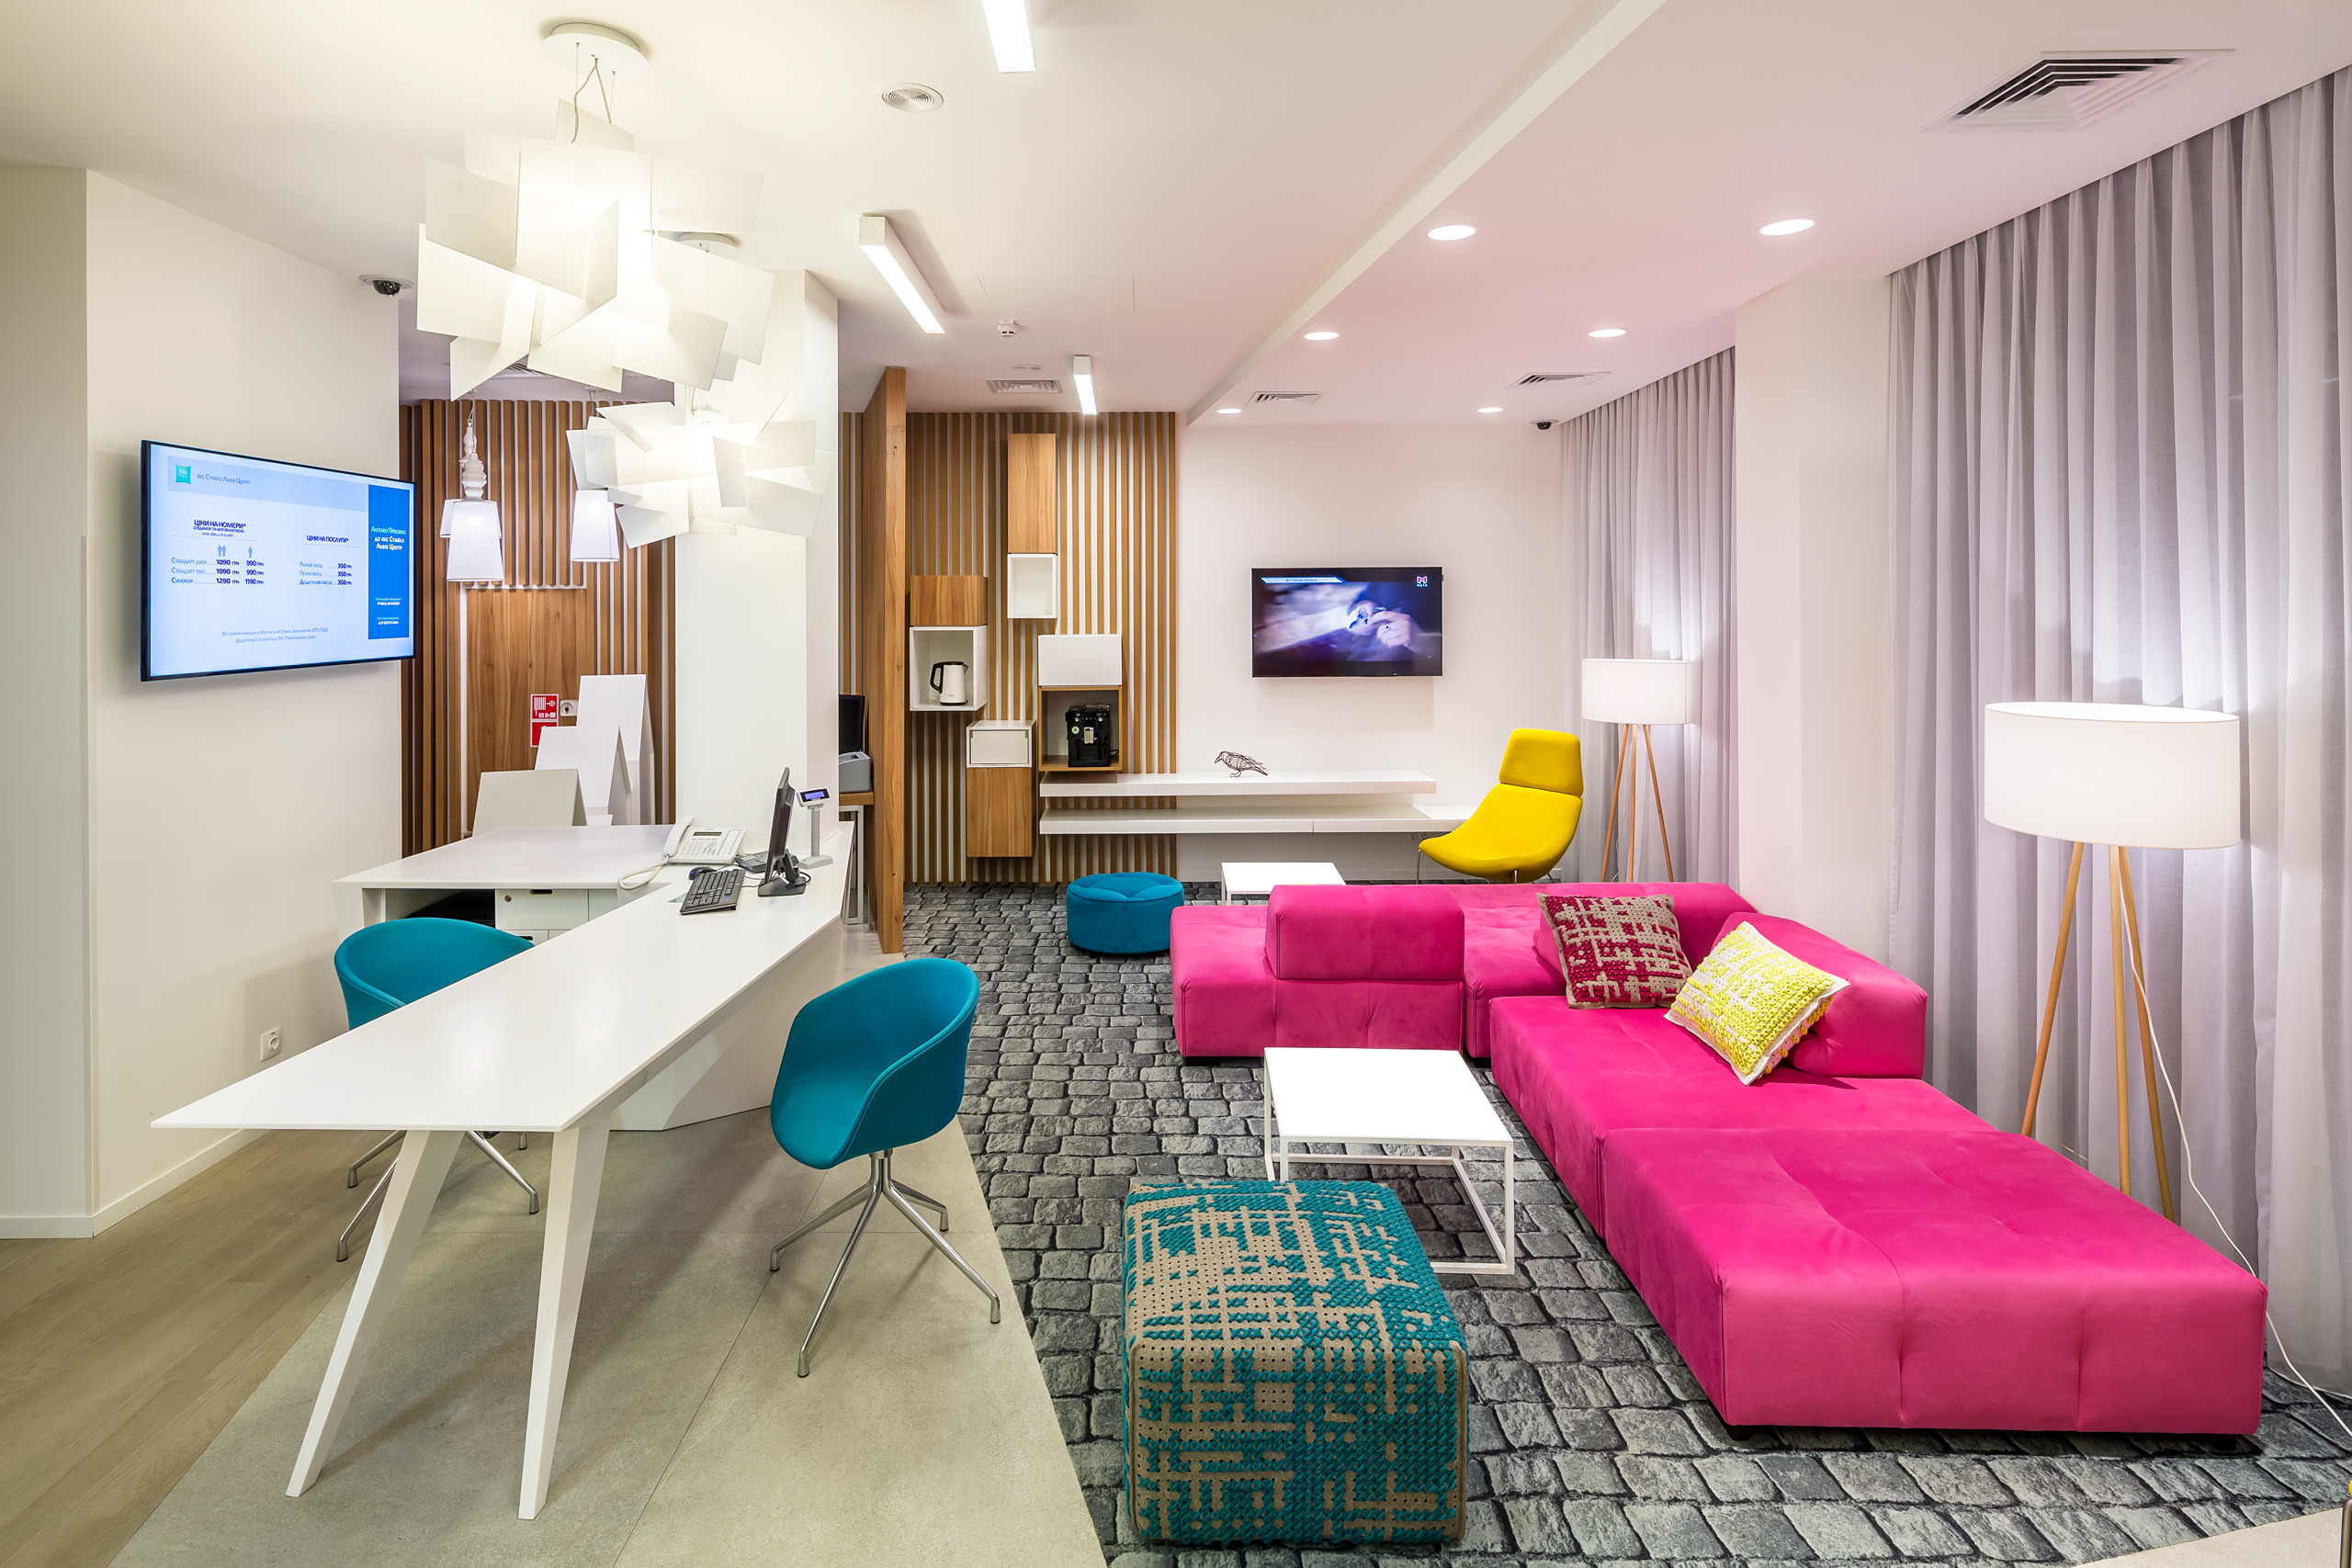 The ibis styles hotel in lviv by ec 5 architects design for New hotel design